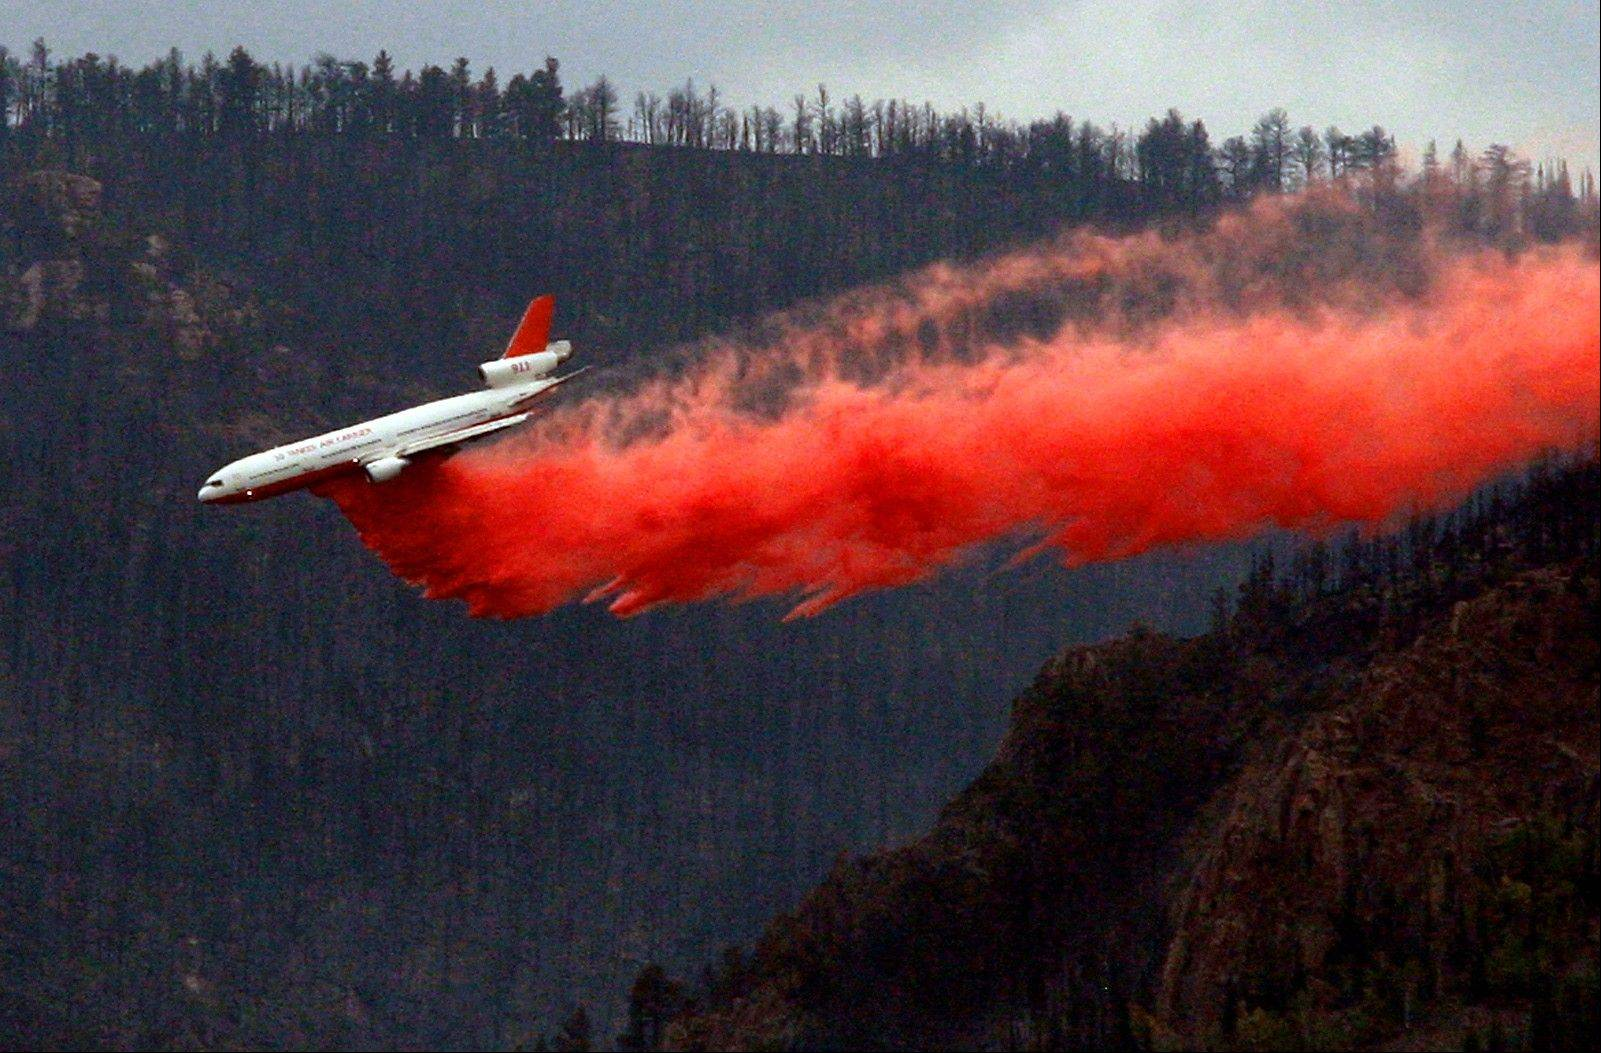 A DC-10 tanker jet drops a load of fire retardant on the north side of Casper Mountain as a wildfire continues to burn Tuesday in Wyoming. The fire was listed at more than 15,000 acres as of Tuesday morning.